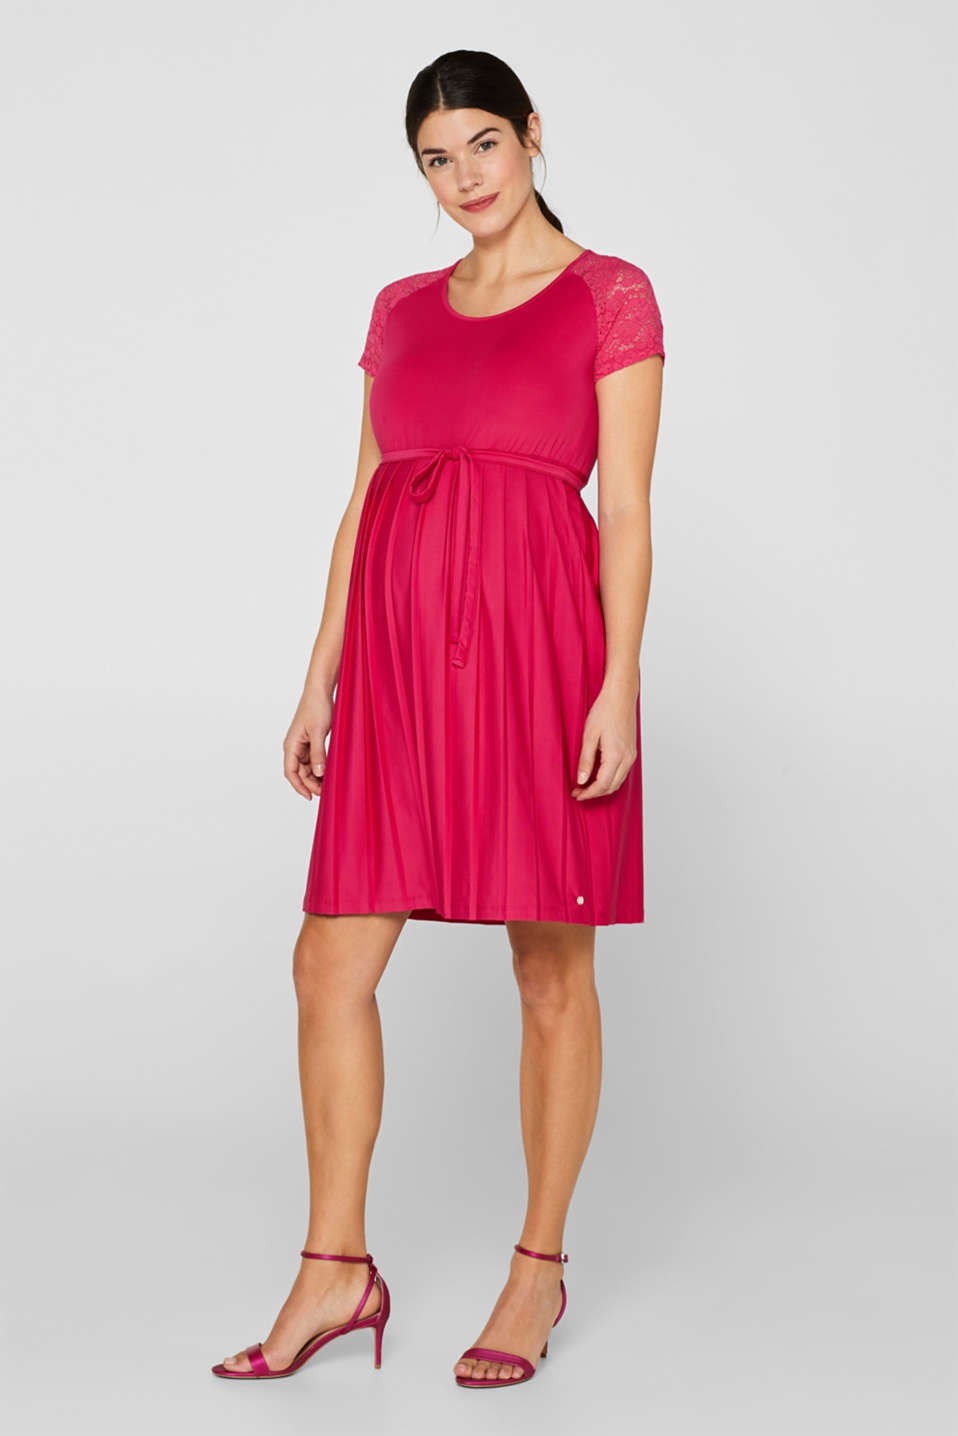 Lace-trimmed dress with a pleated skirt, LCPINK FUCHSIA, detail image number 1